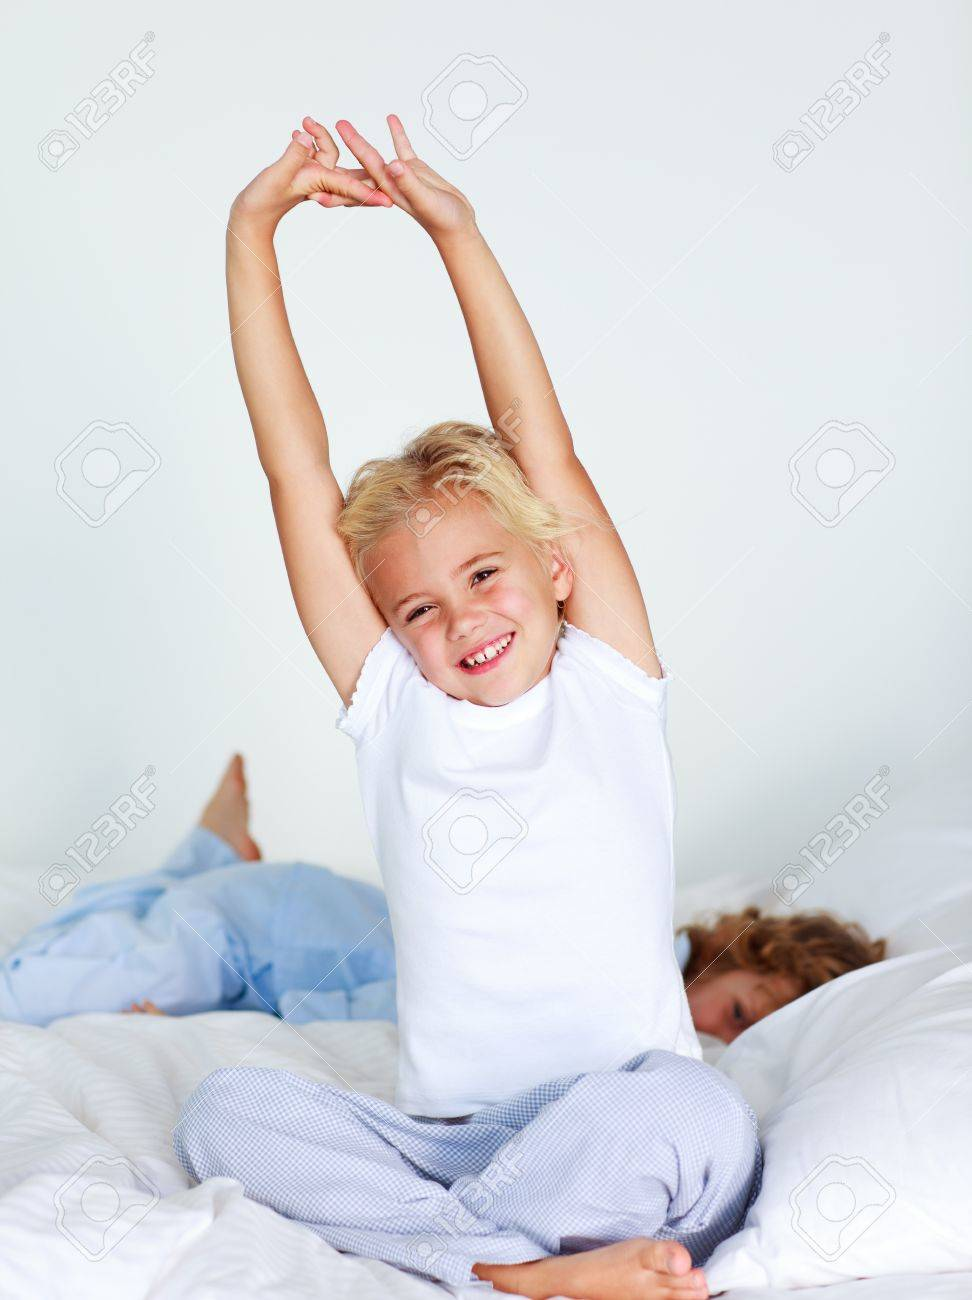 Young child stretching after sleeping Stock Photo - 10113323